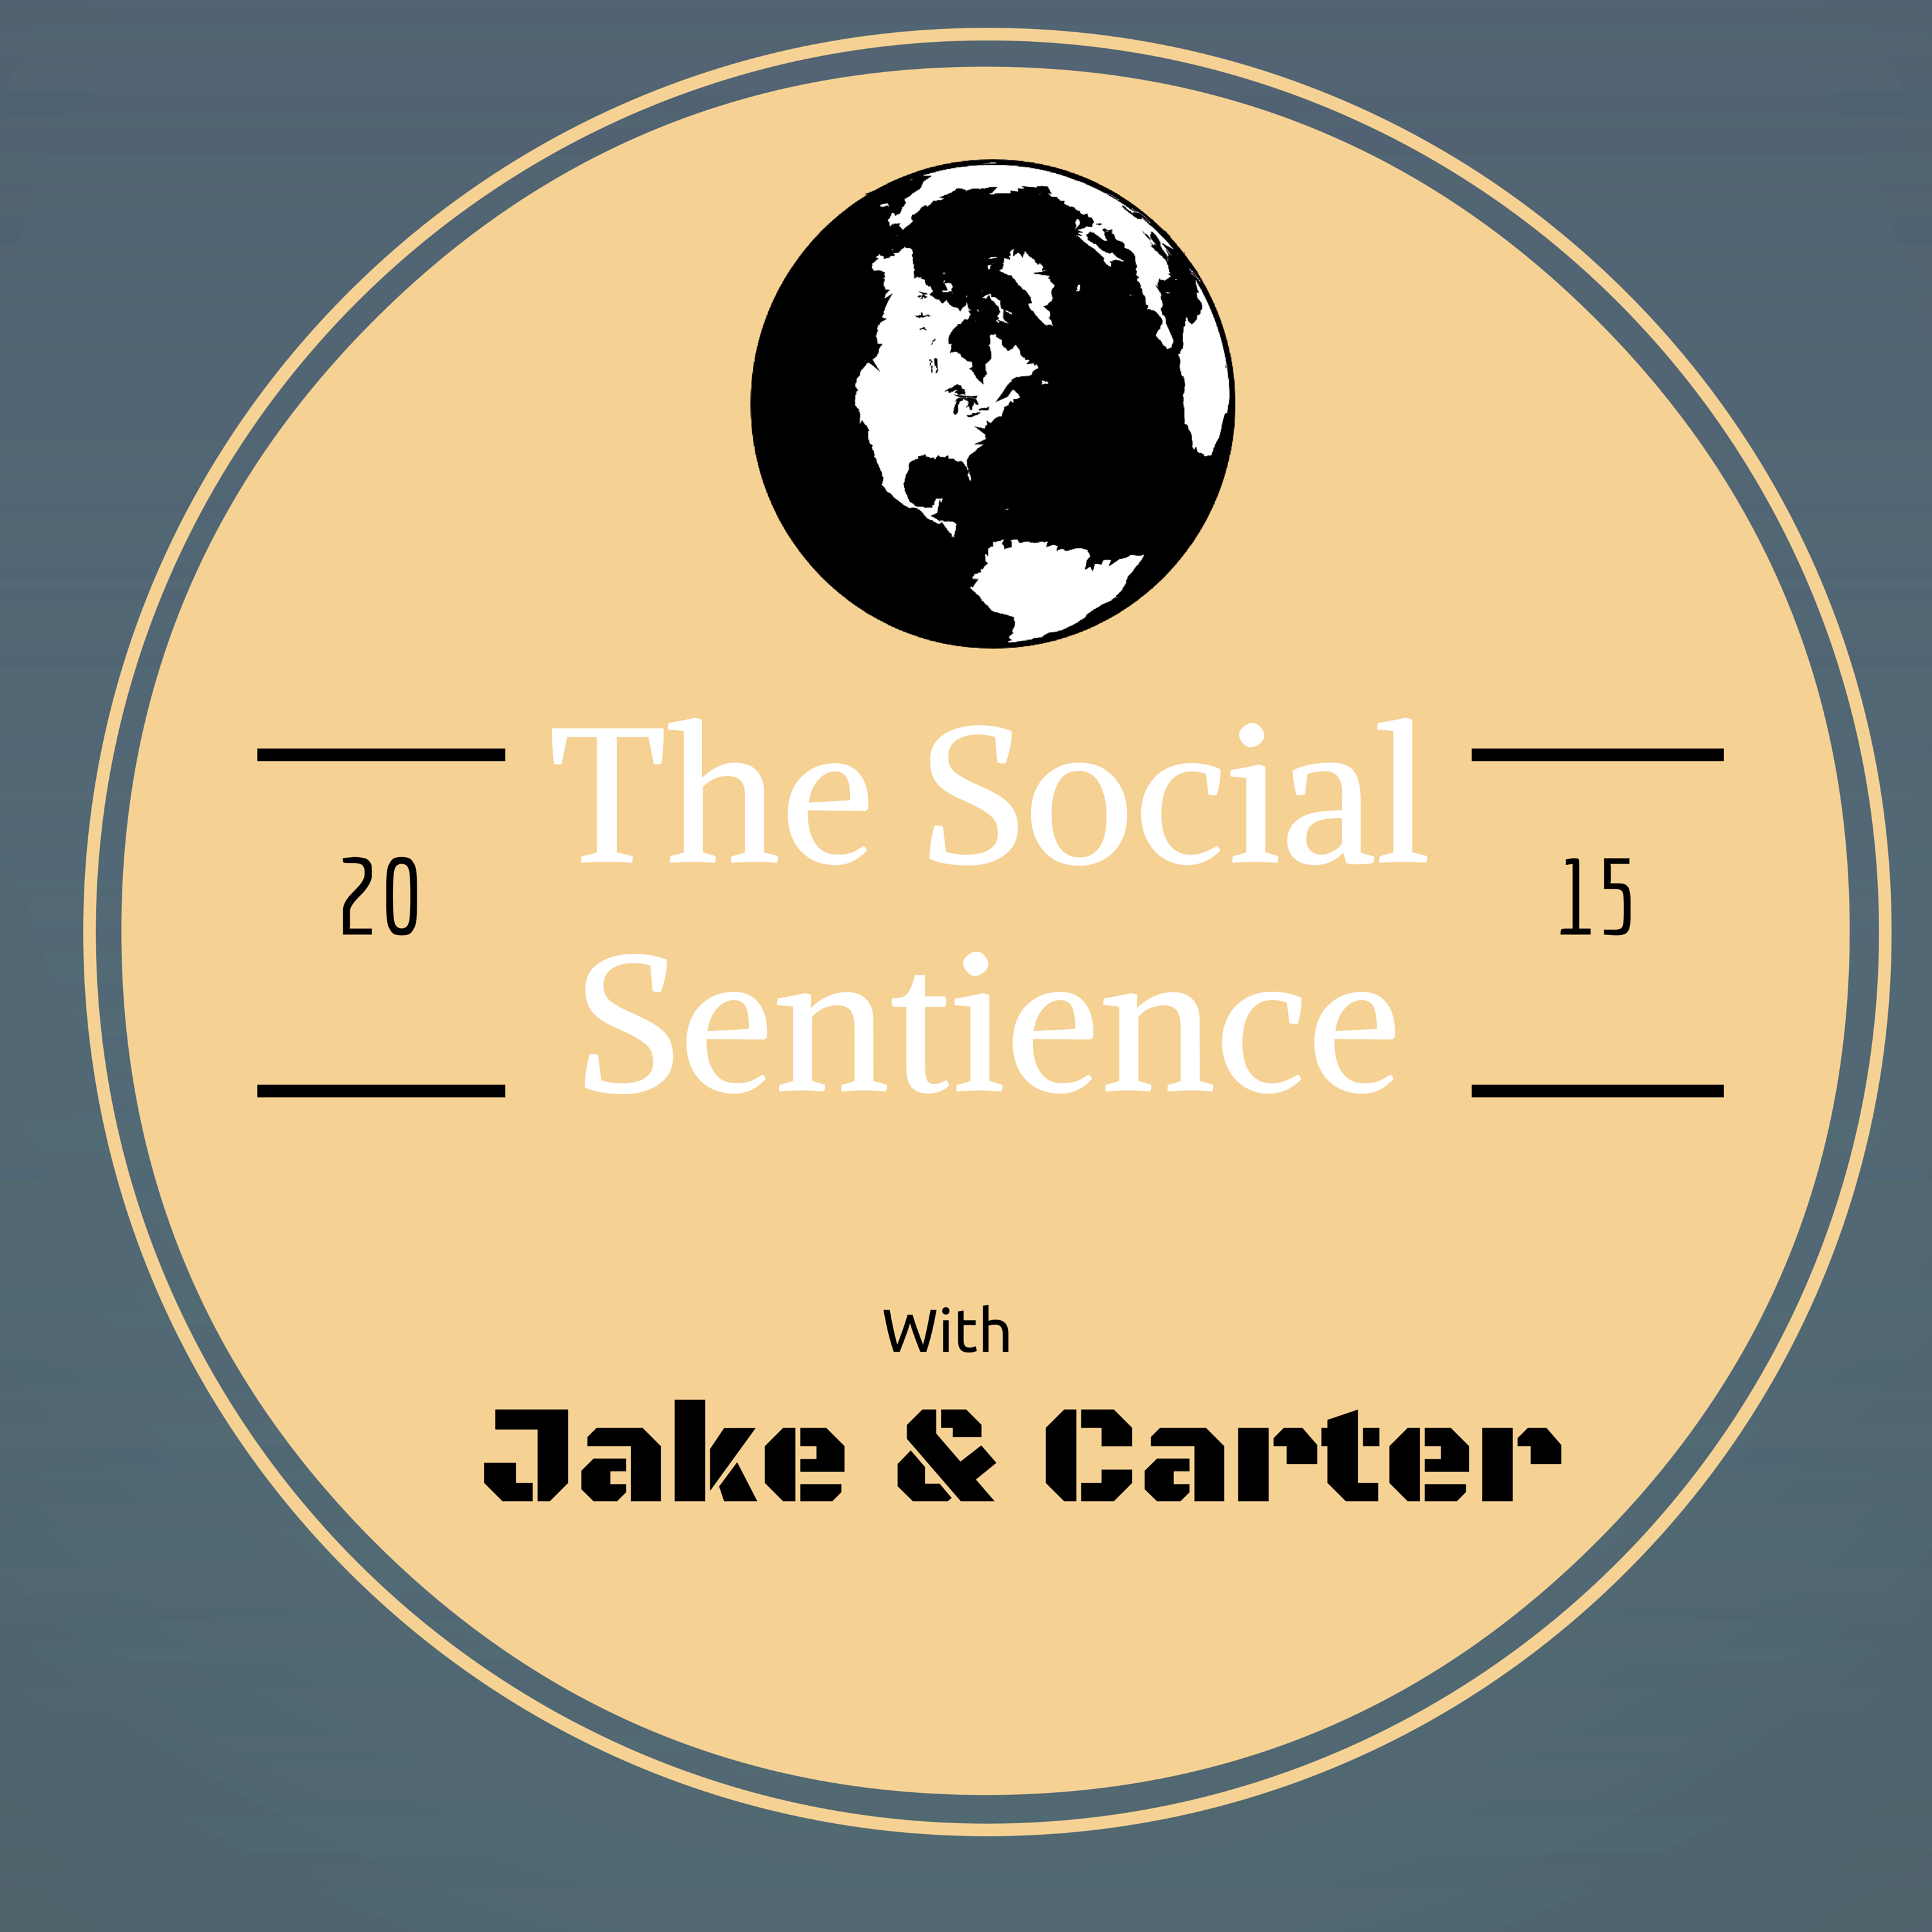 The Social Sentience